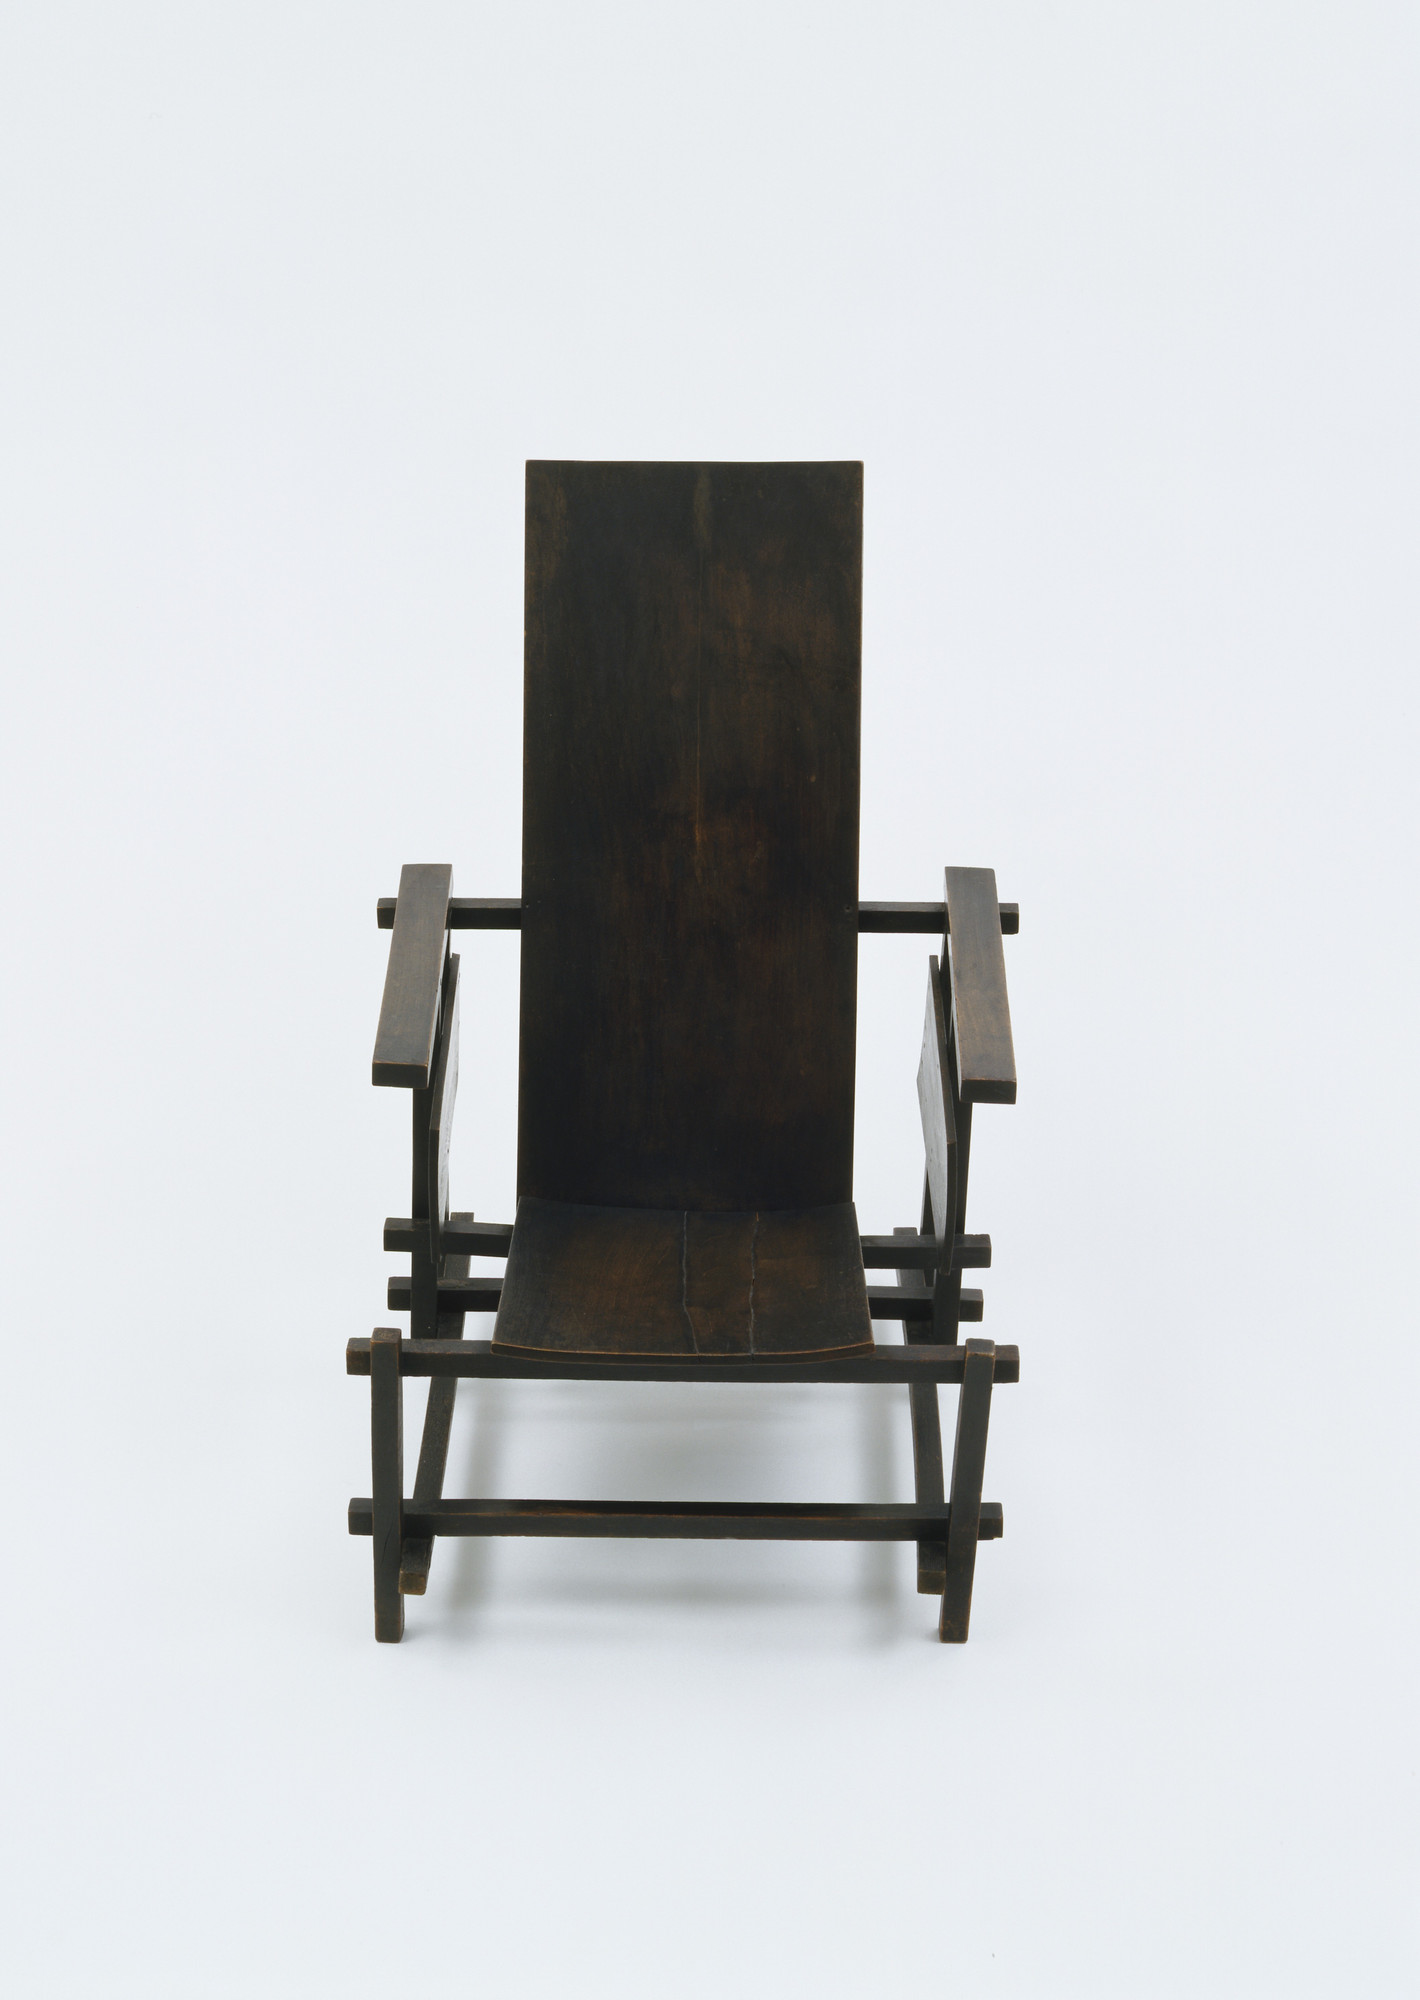 Gerrit Rietveld. Prototype for Red/Blue Chair. 1917-18